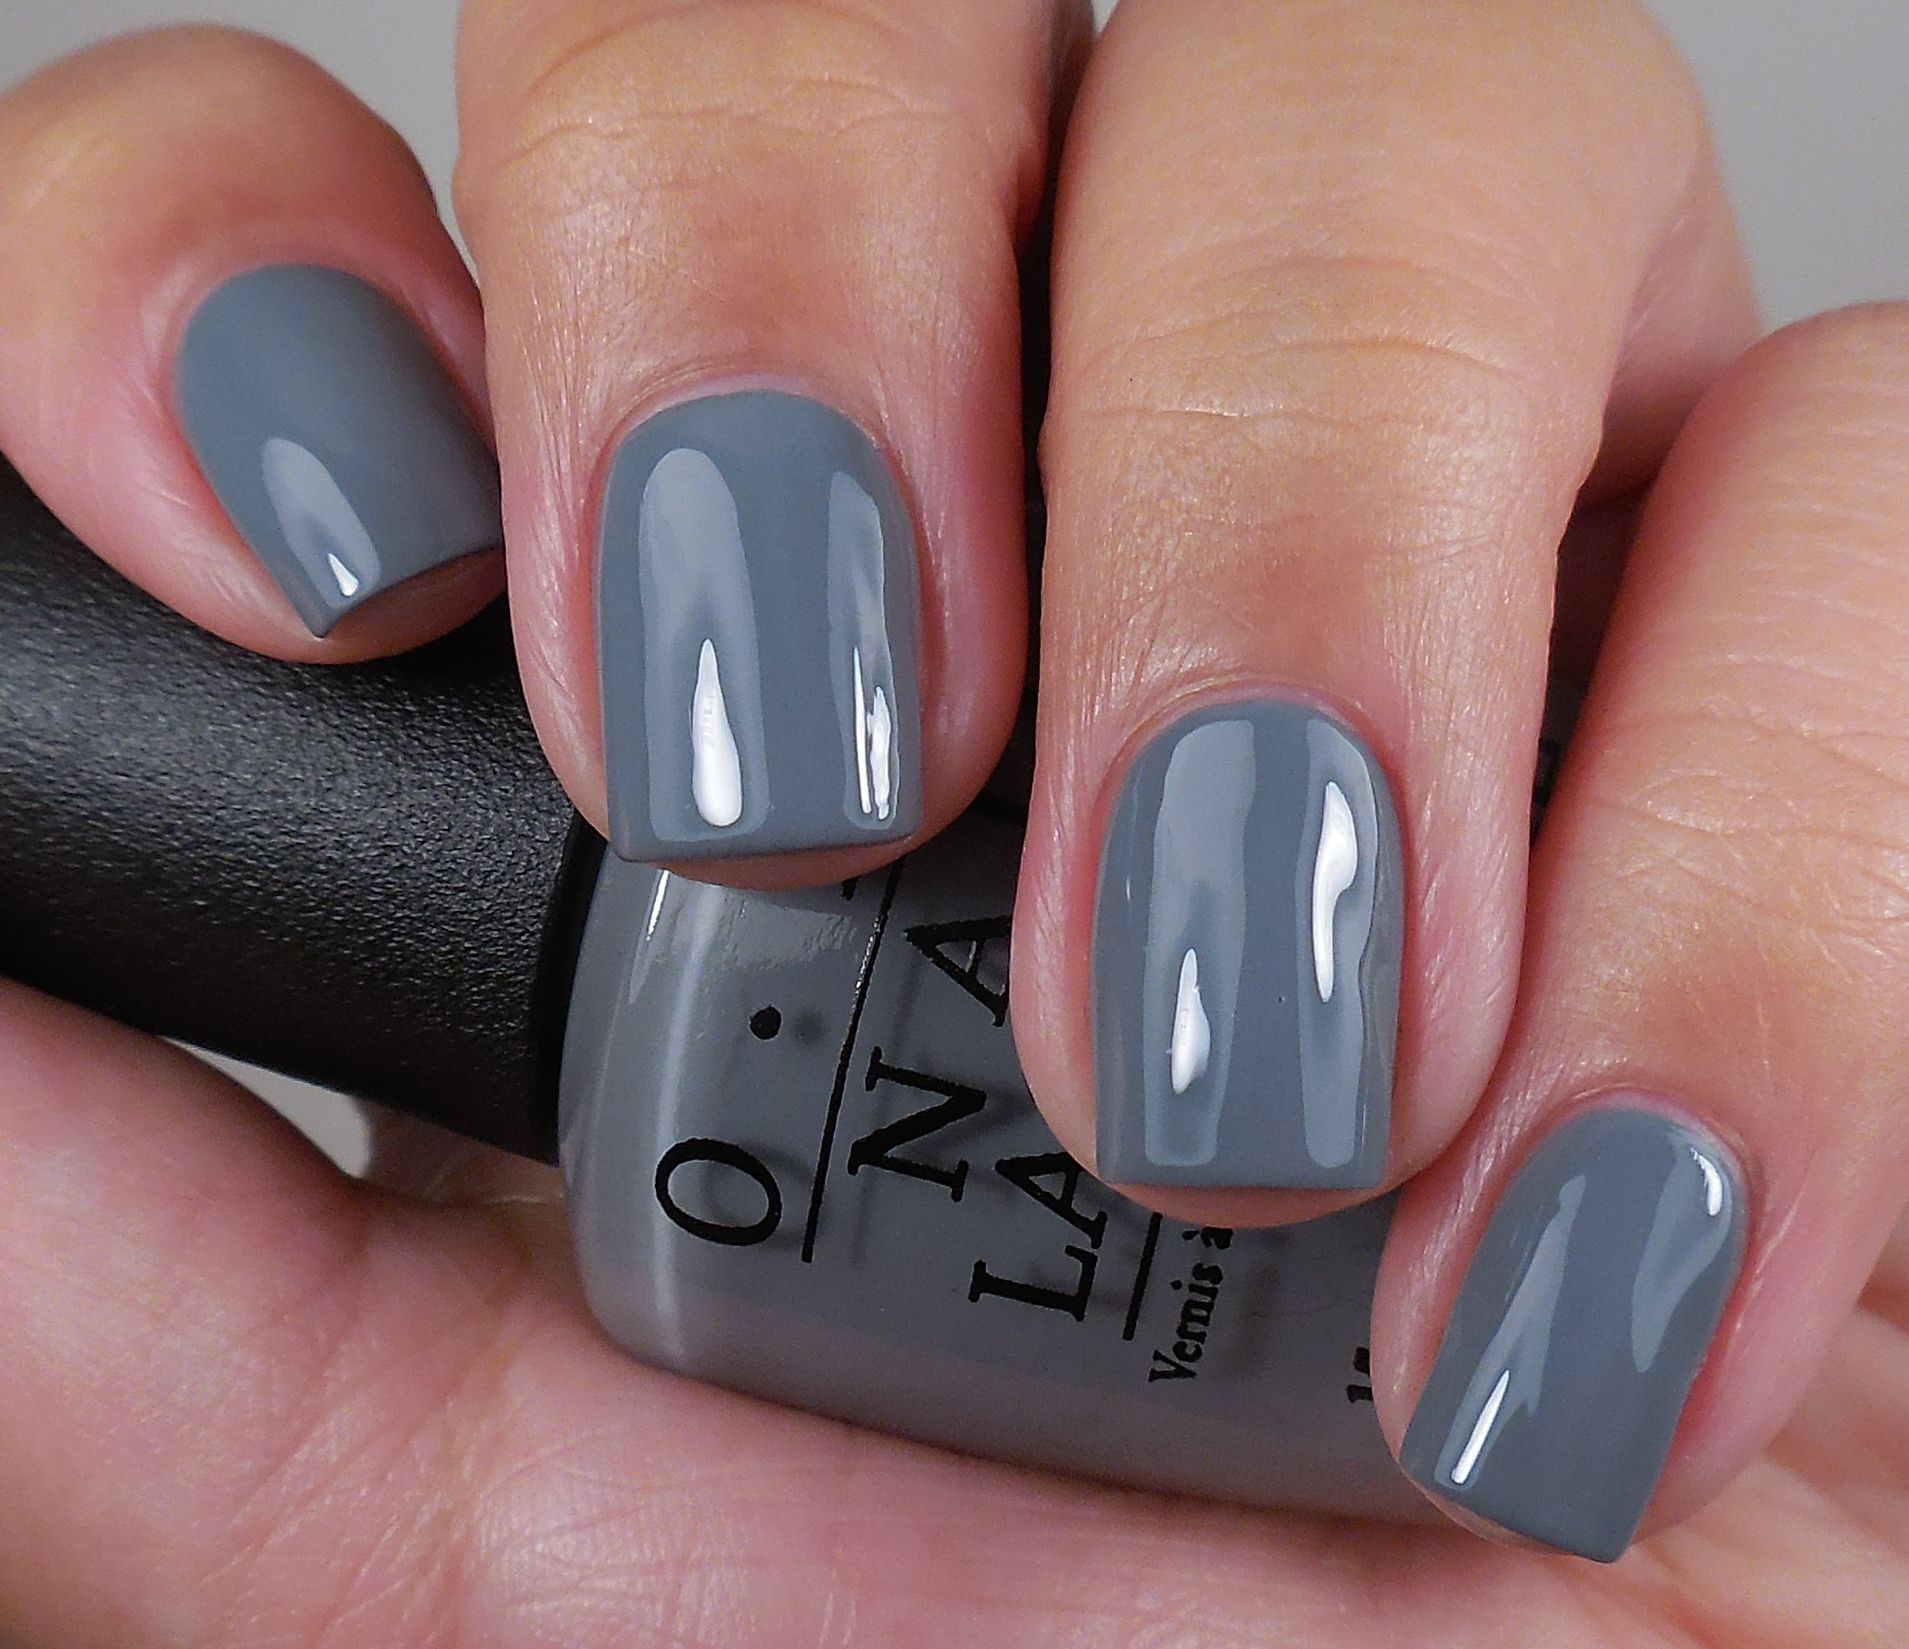 OPI - Embrace the Grey - current mani color - 2.3.2015 <3 it. | My ...